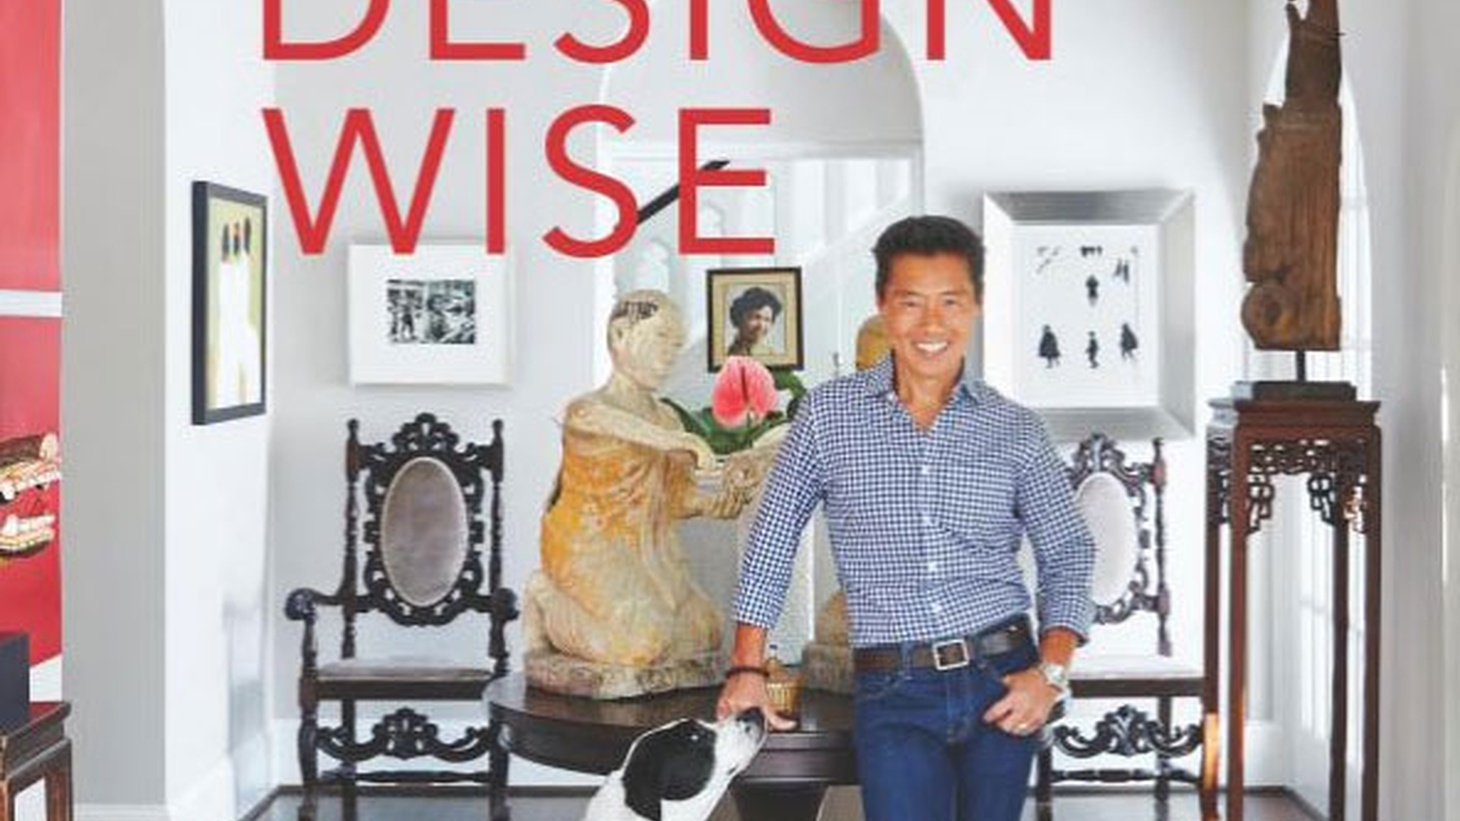 A new year may have you thinking about a home makeover. But before you jump at those furniture sales, take Vern Yip's advice: get out your ruler, make some plans, consider carefully what you really want. Yip is an interior designer and was the longtime makeover artist on the Learning Channel's interior-design show Trading Spaces.